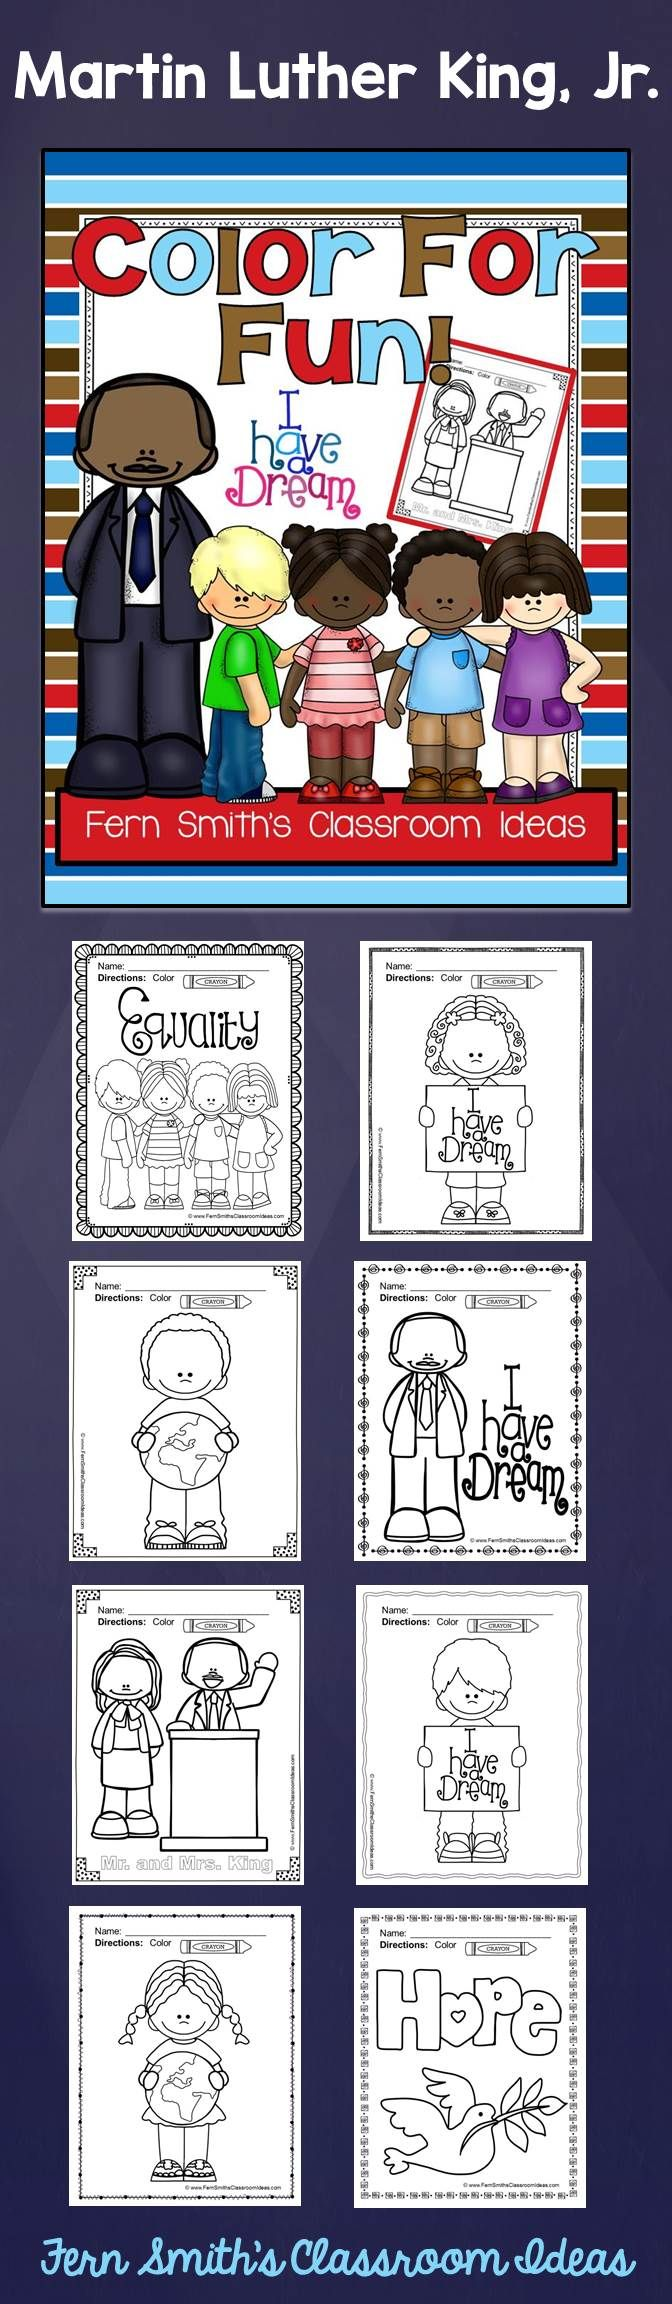 Free printable coloring pages dr martin luther king jr - Free Martin Luther King Jr Color For Fun Printable Coloring Pages